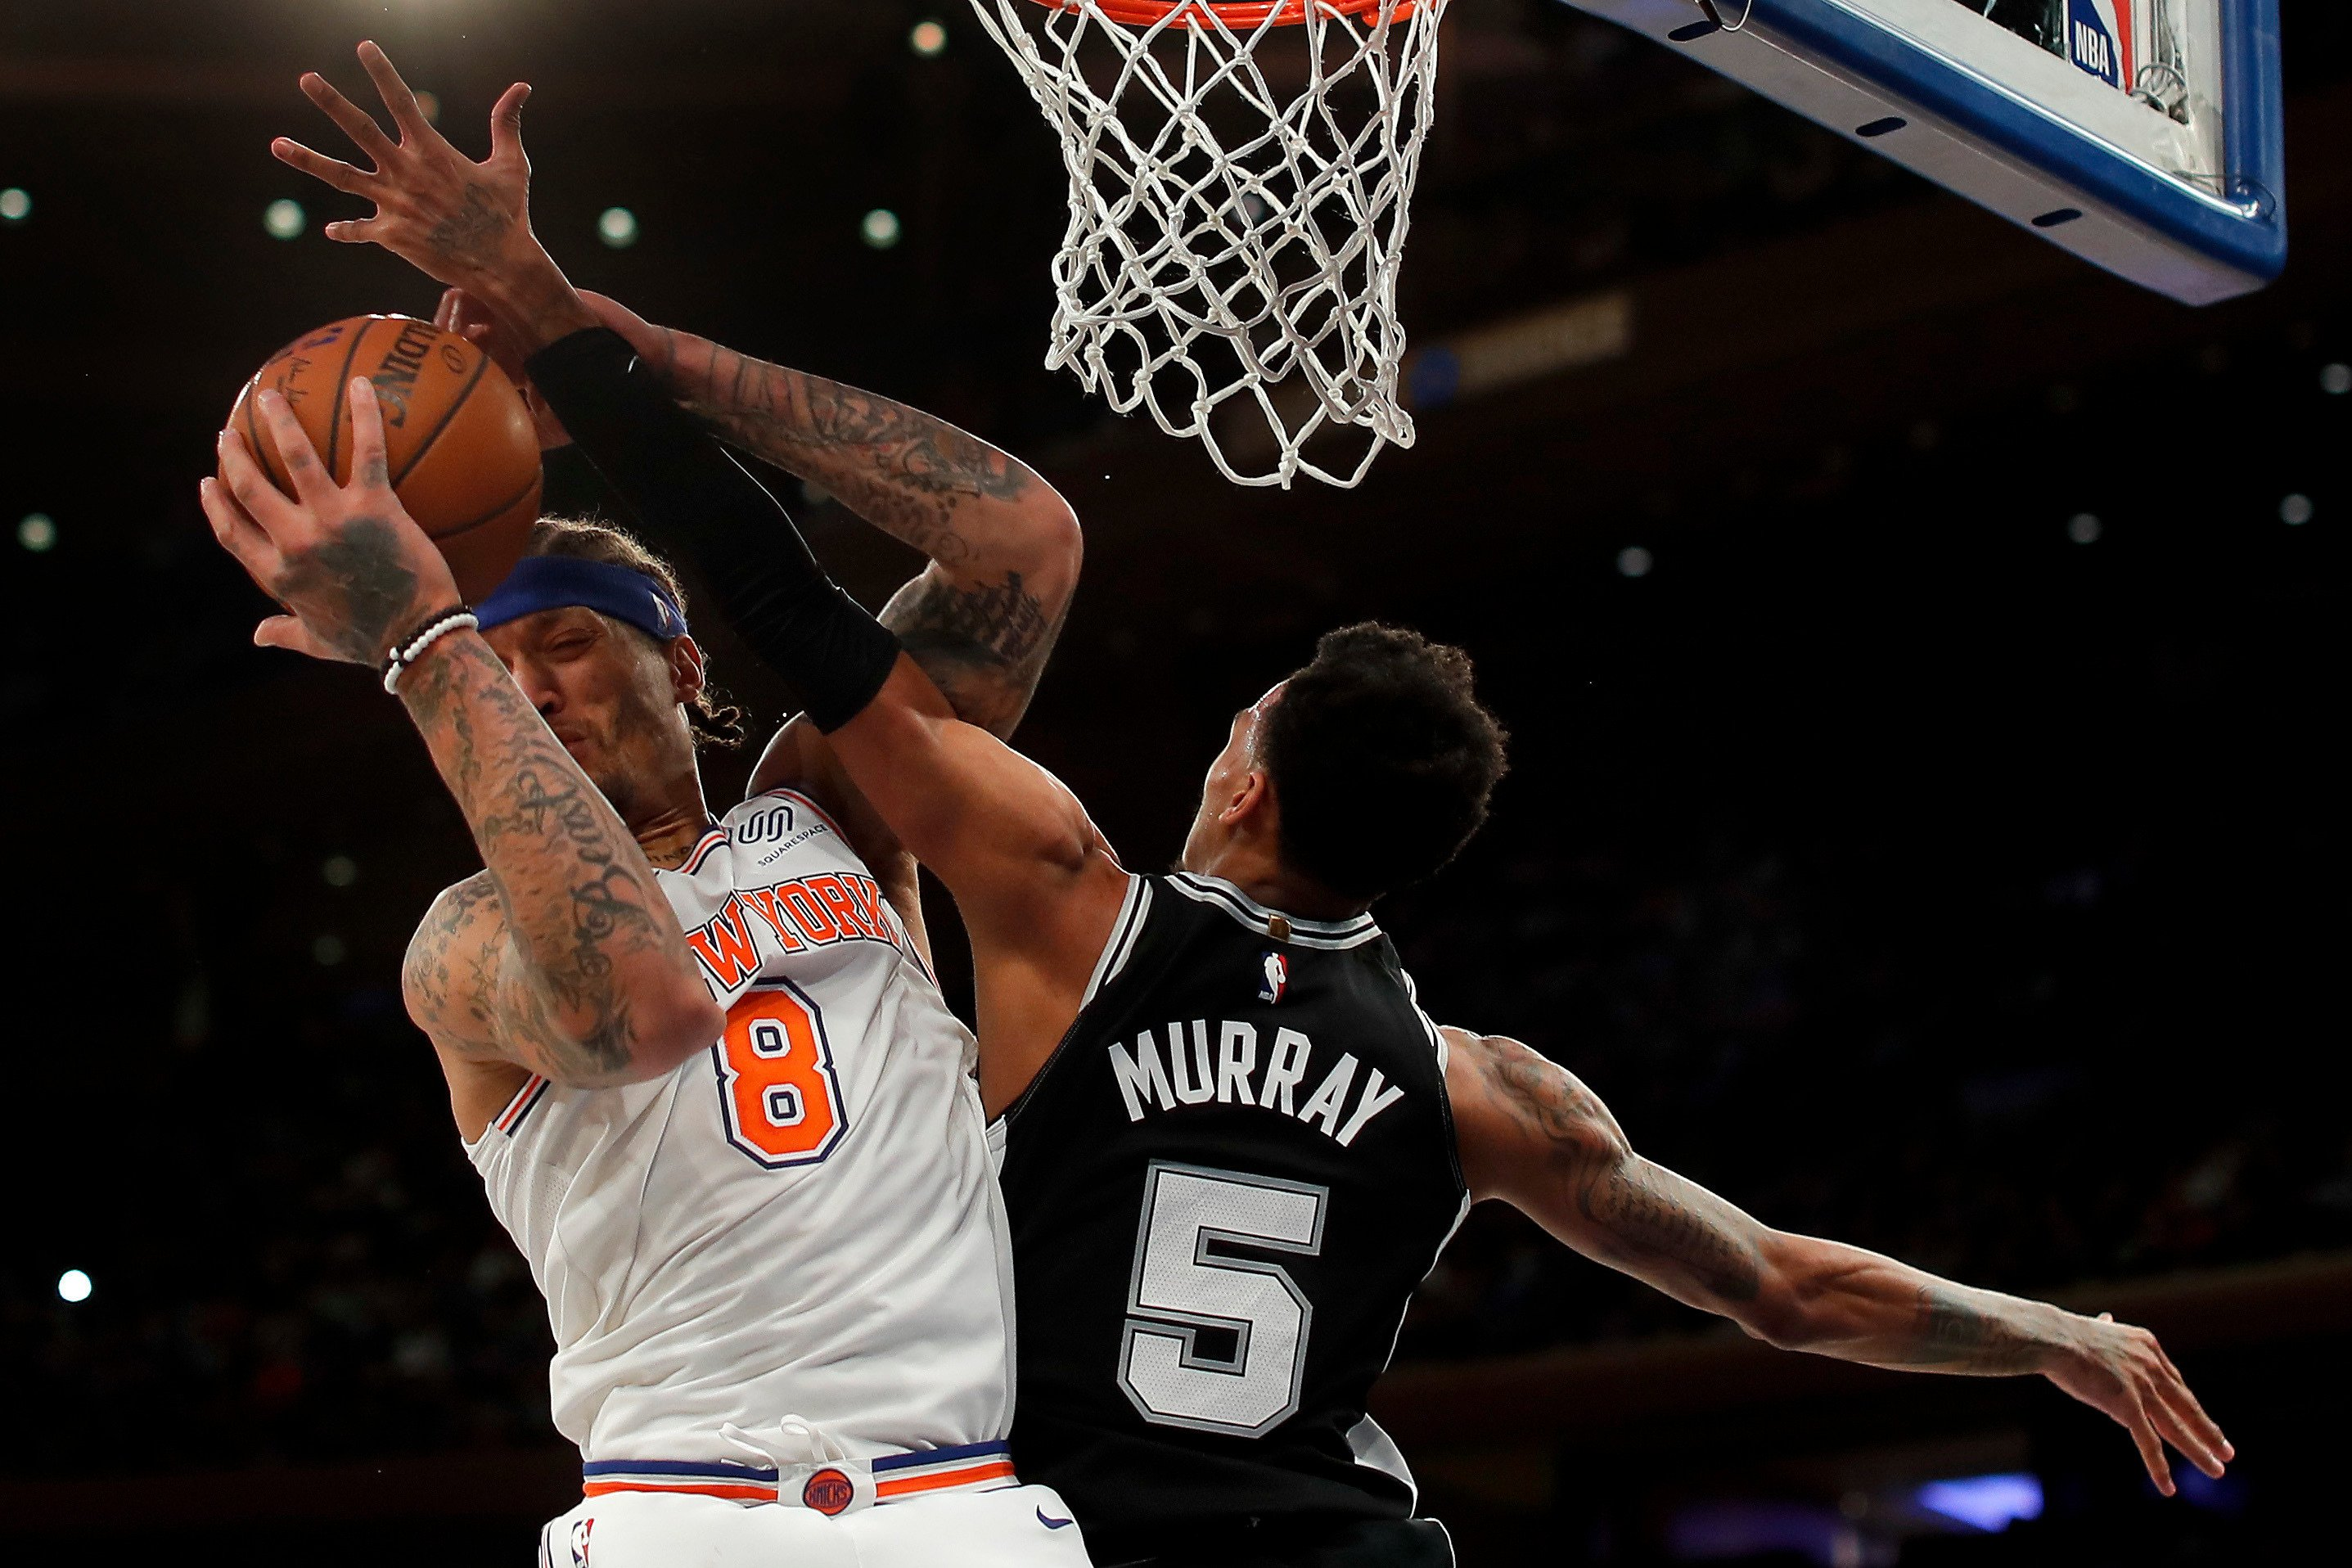 Michael Beasley couldn't coax Knicks out of poor shooting night